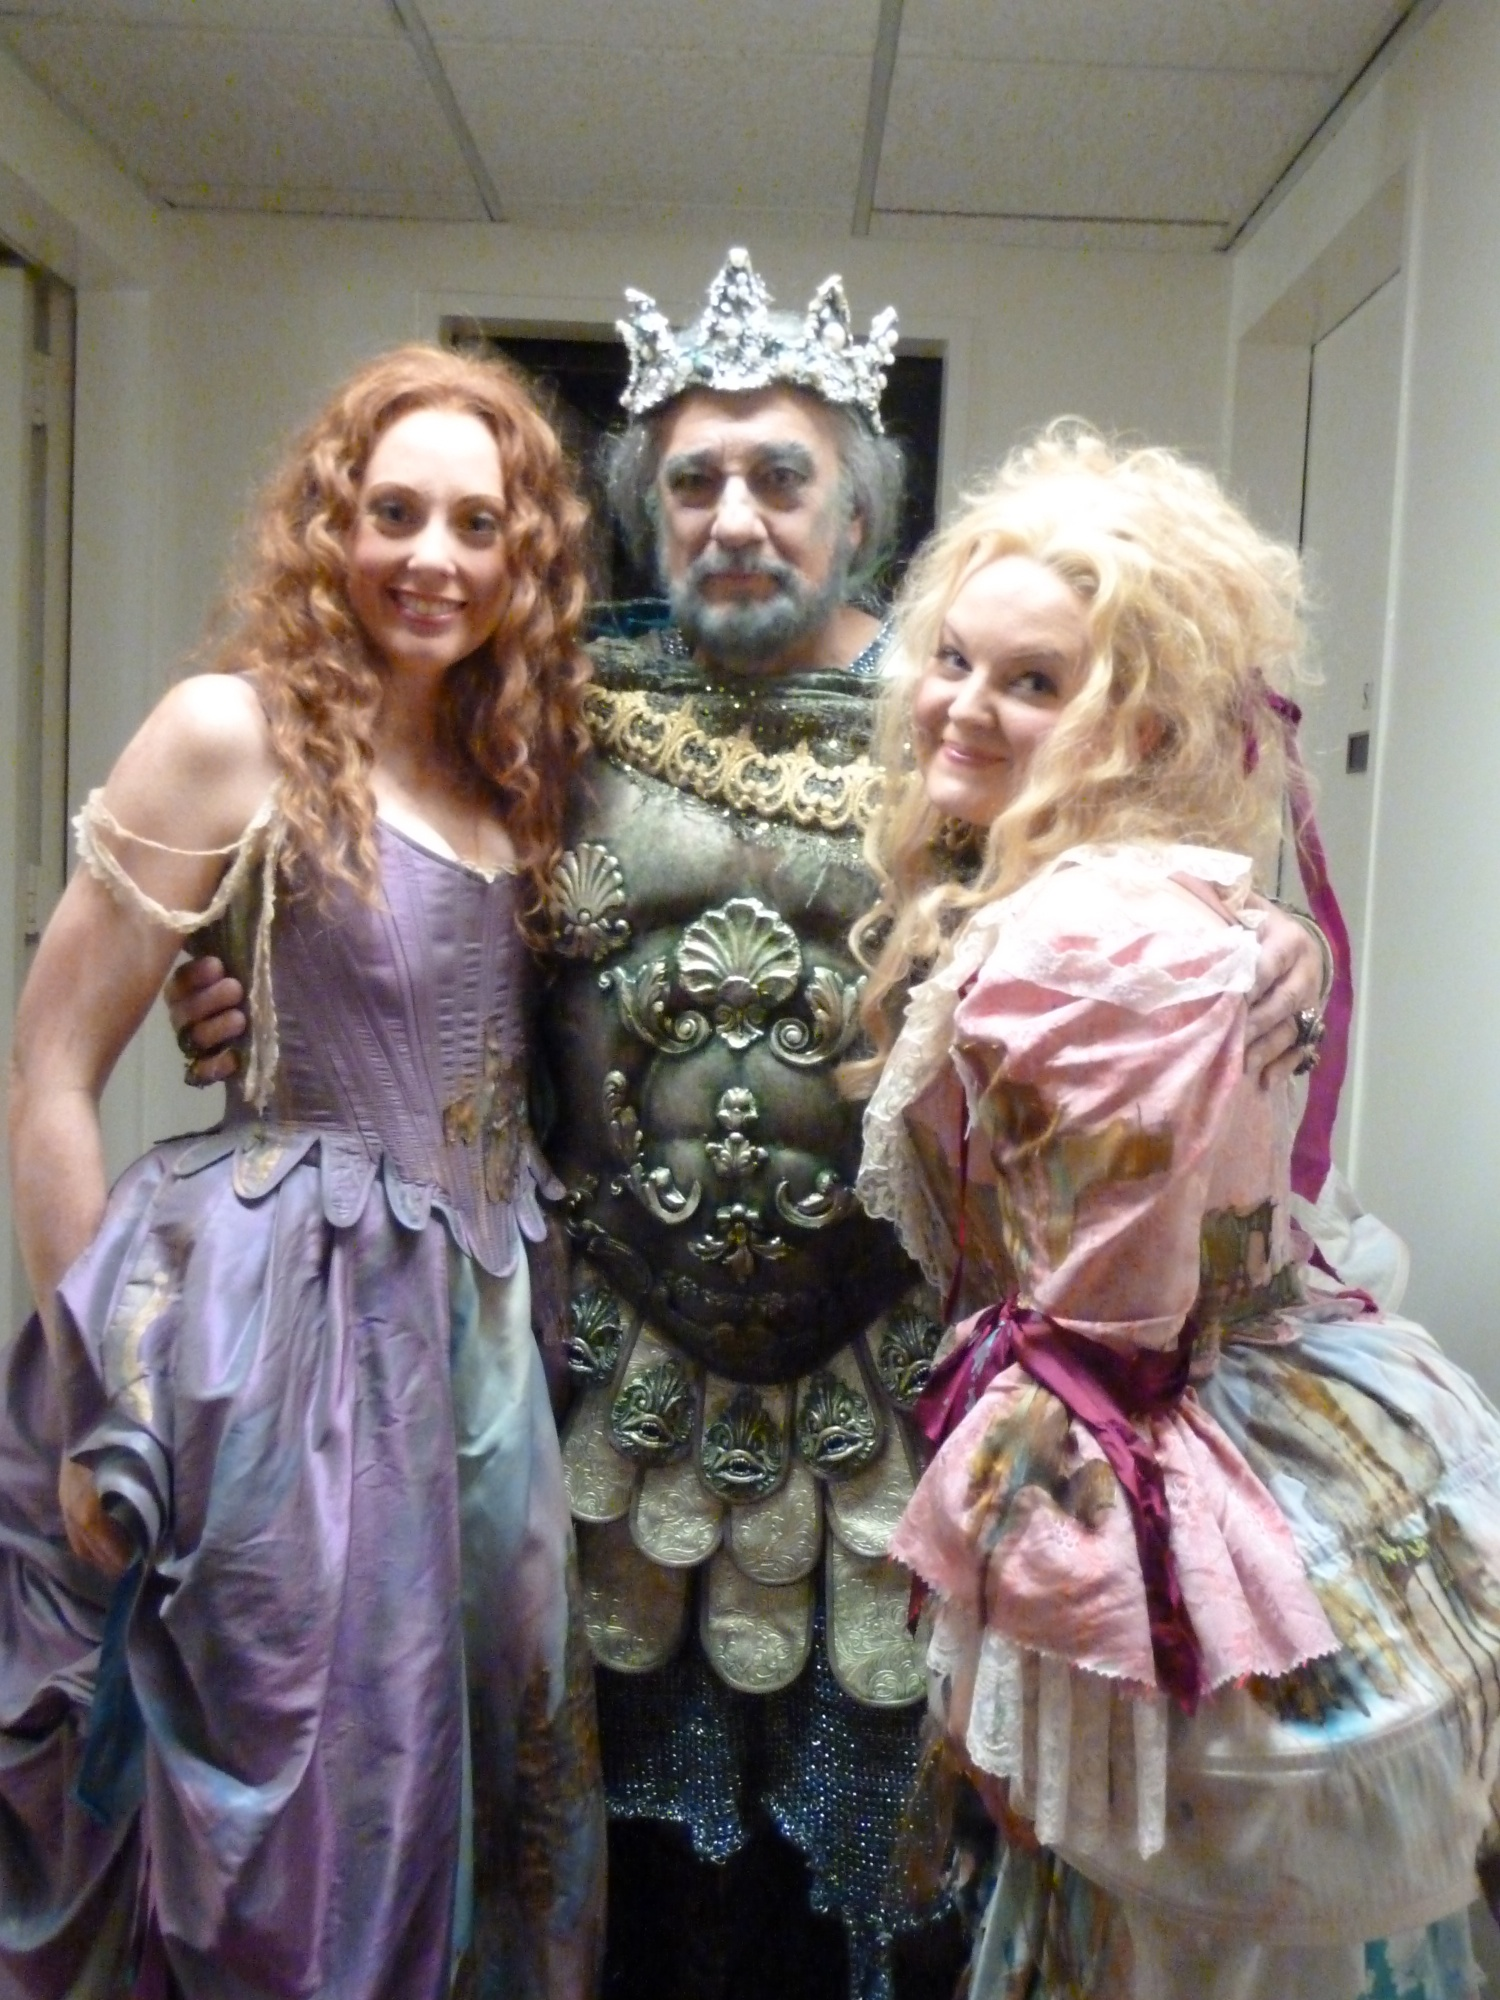 Elizabeth DeShong backstage with Placido Domingo and Layla Clare at The Met for 'The Enchanted Island', 2011